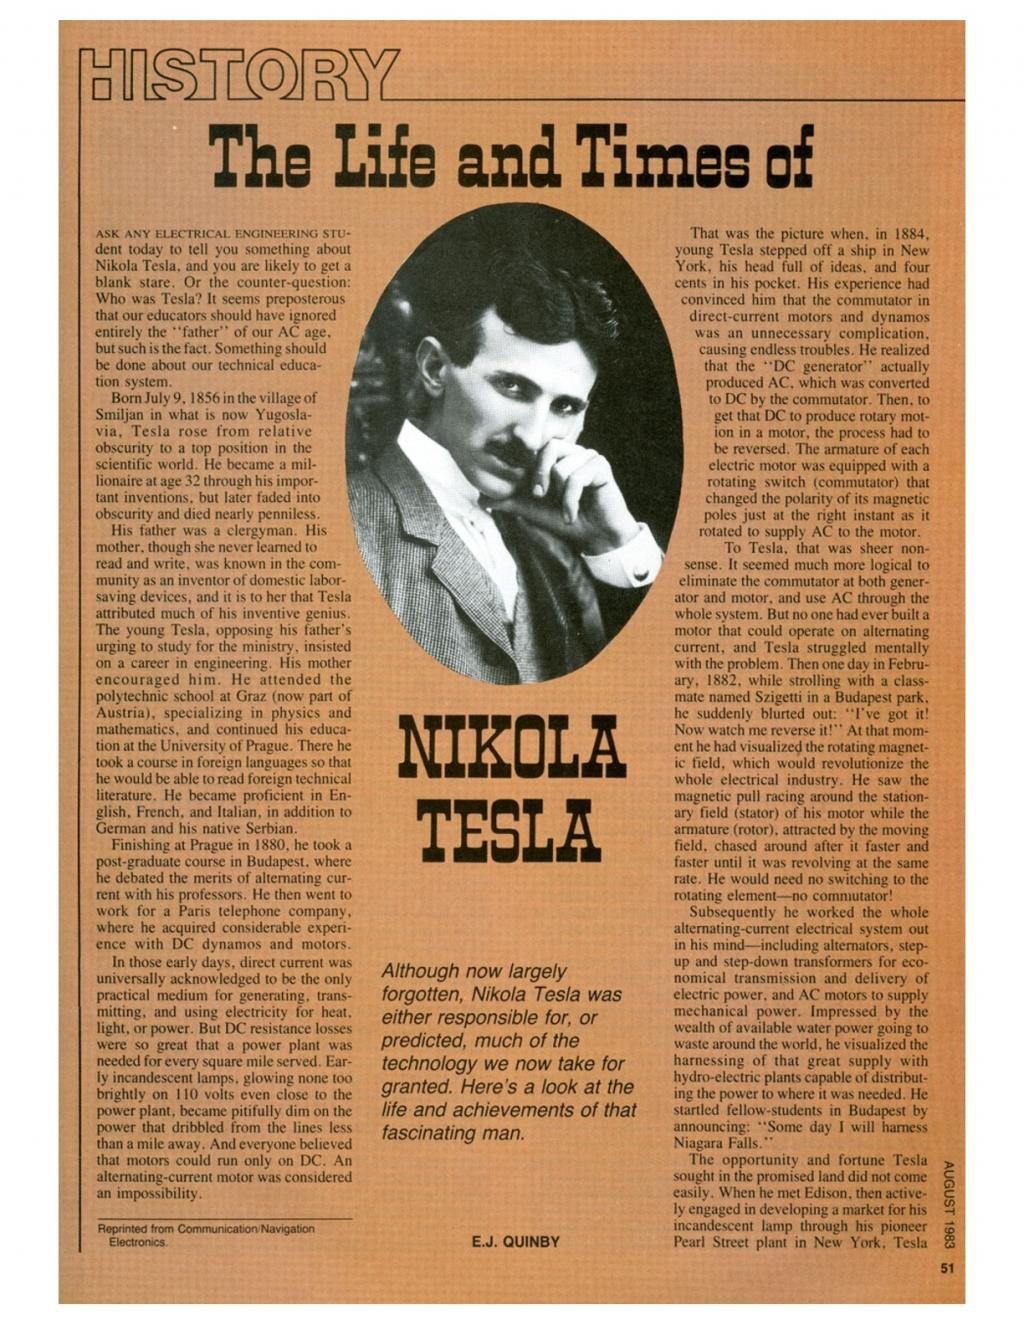 Preview of The Life and Times of Nikola Tesla article